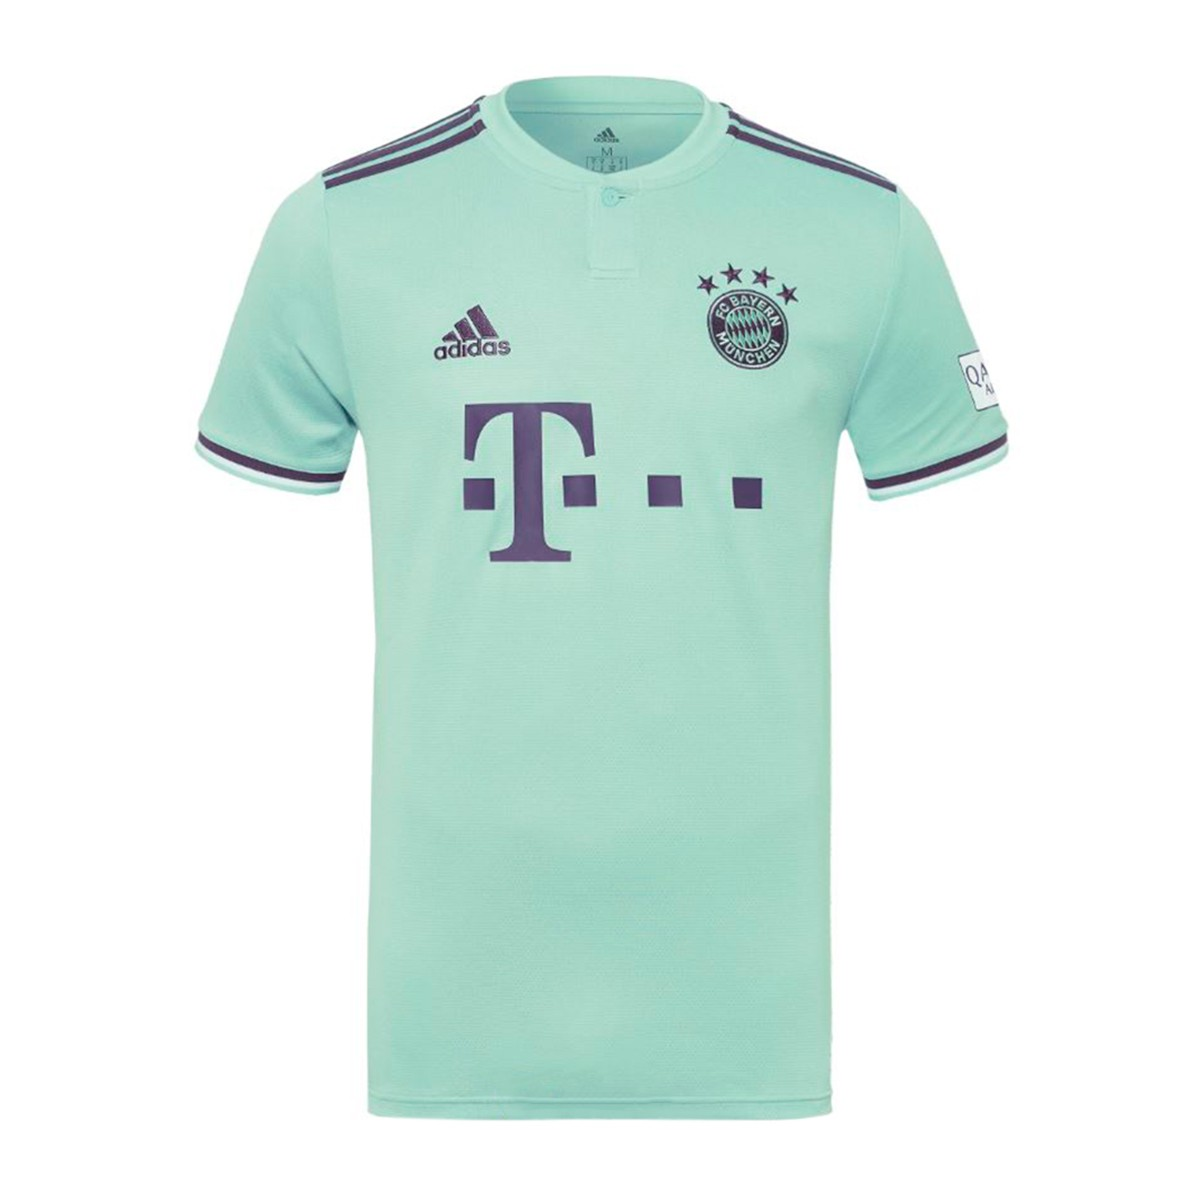 cheaper 7ebaa 91bf4 Camiseta FC Bayern Munich Segunda Equipación 2018-2019 Green-Trace  purple-White